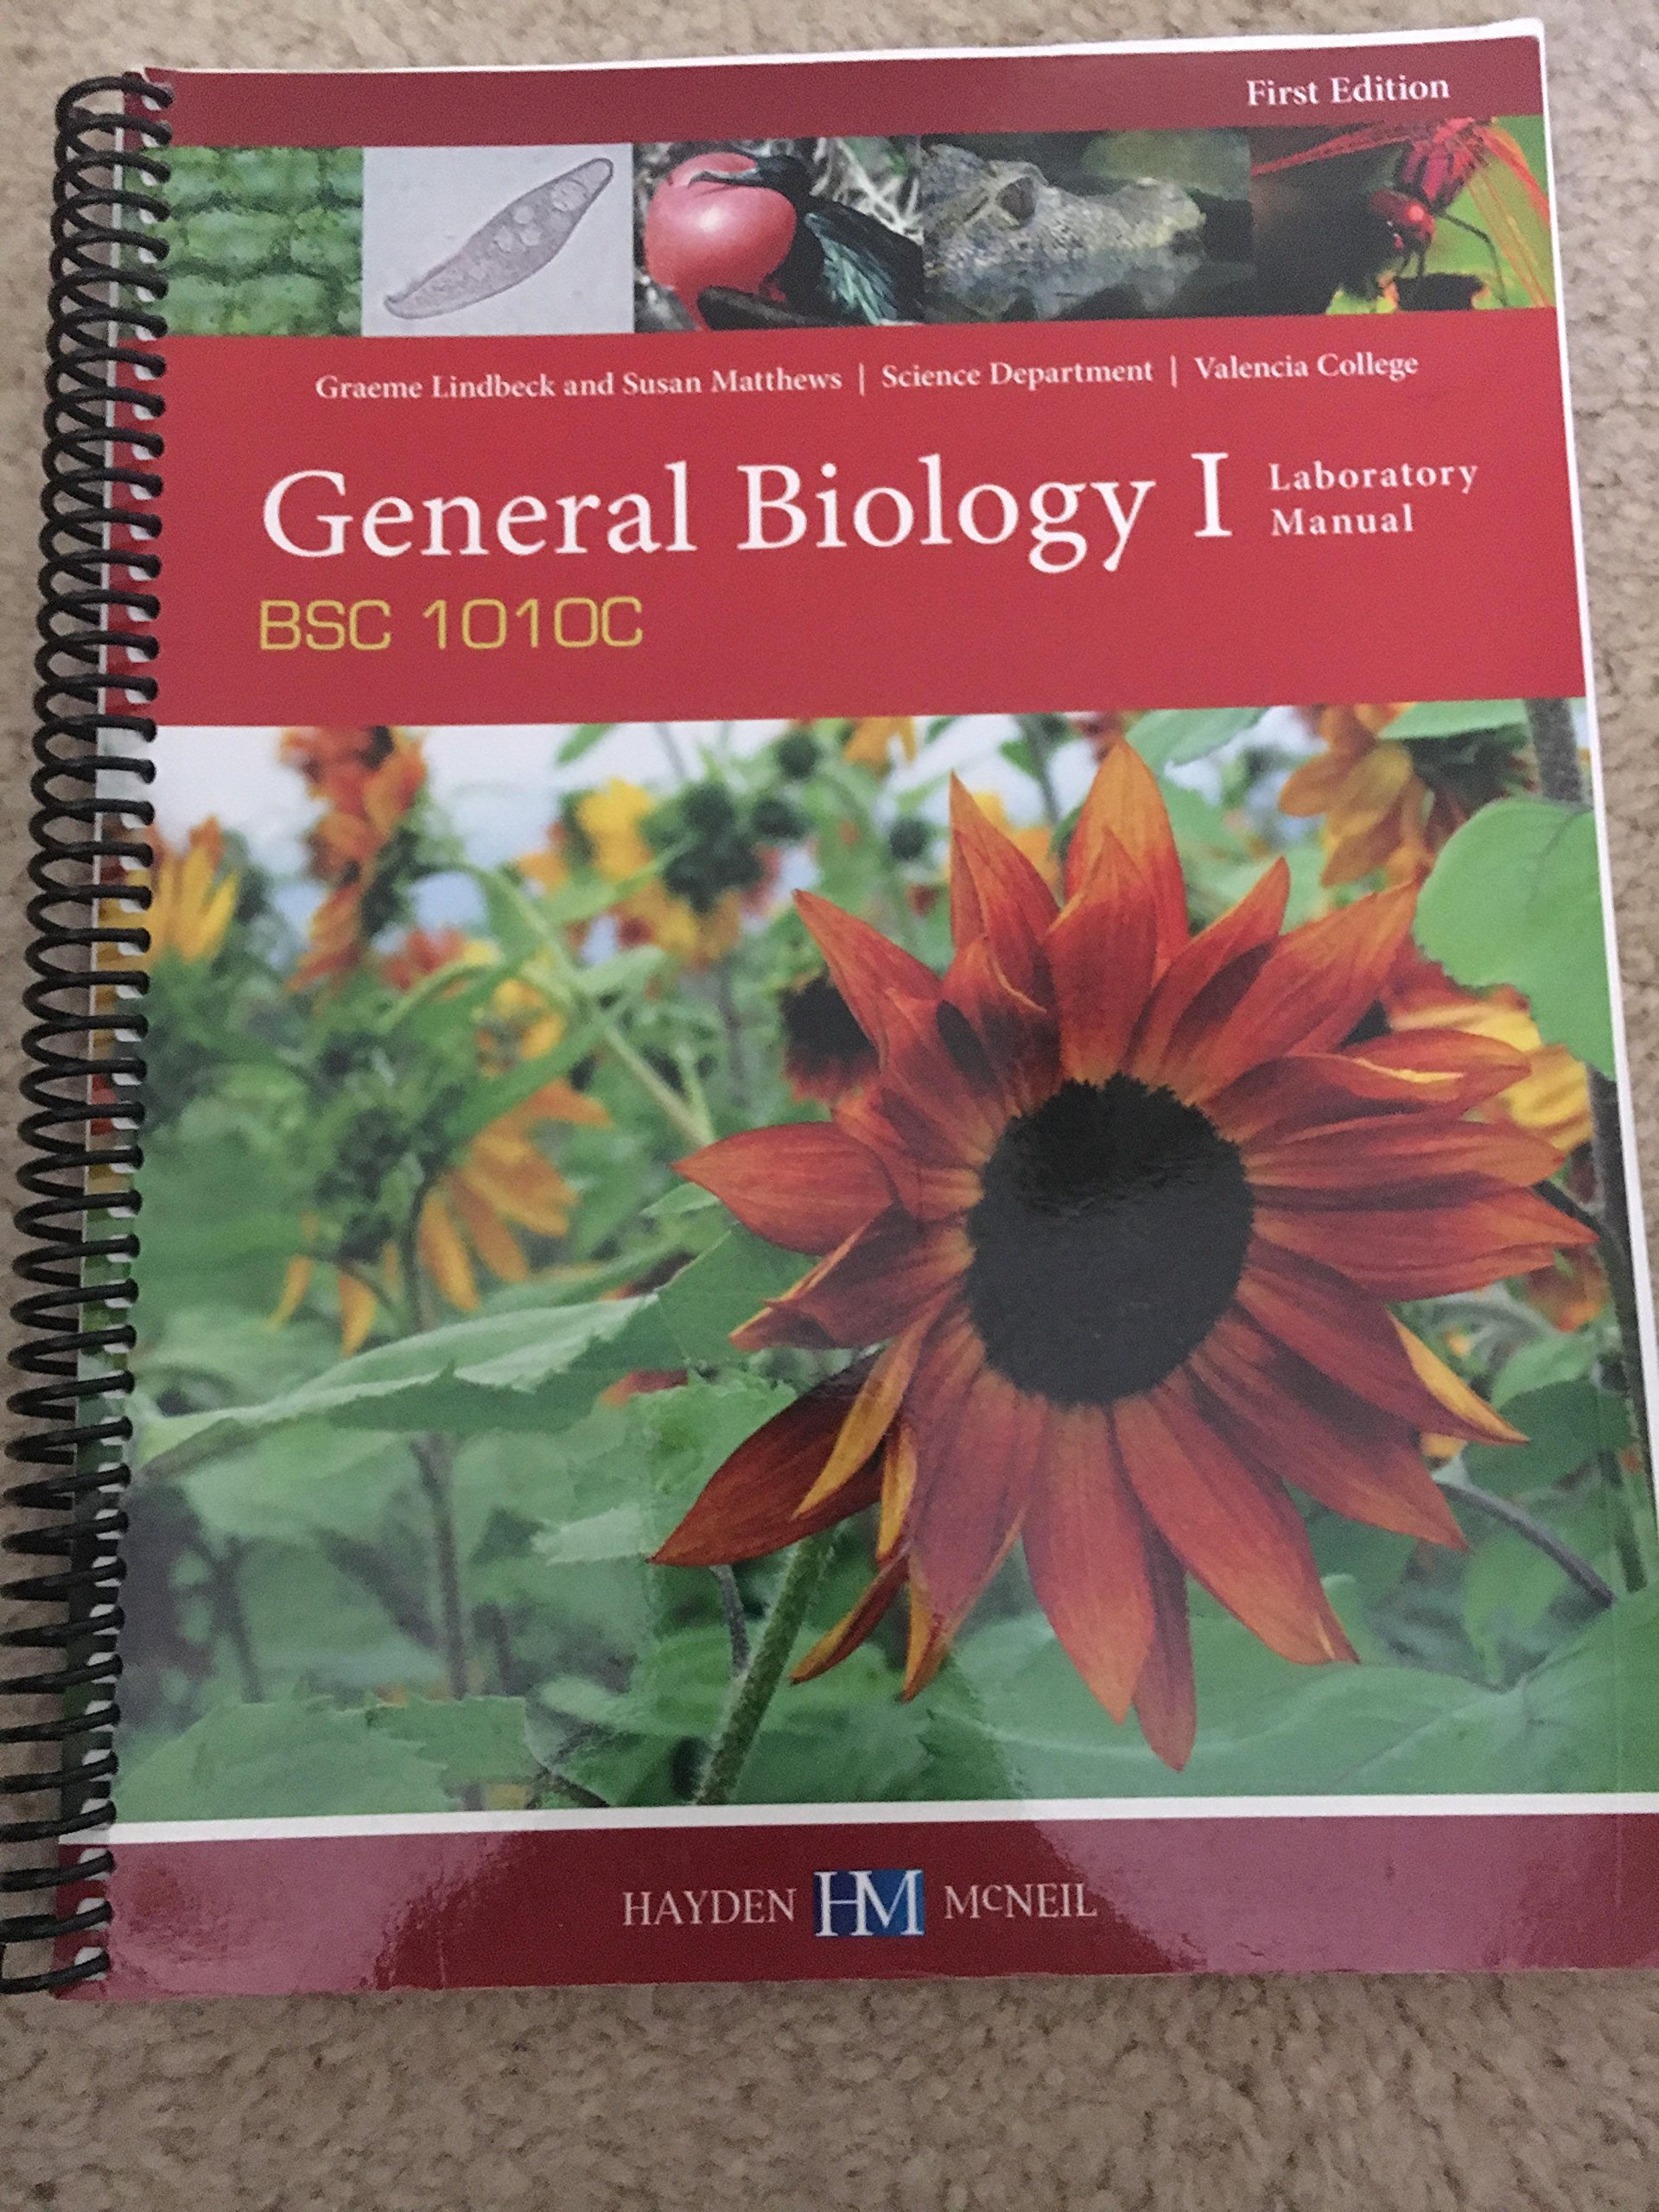 general biology 1 laboratory manual: Valencia college: 9780738079875:  Amazon.com: Books